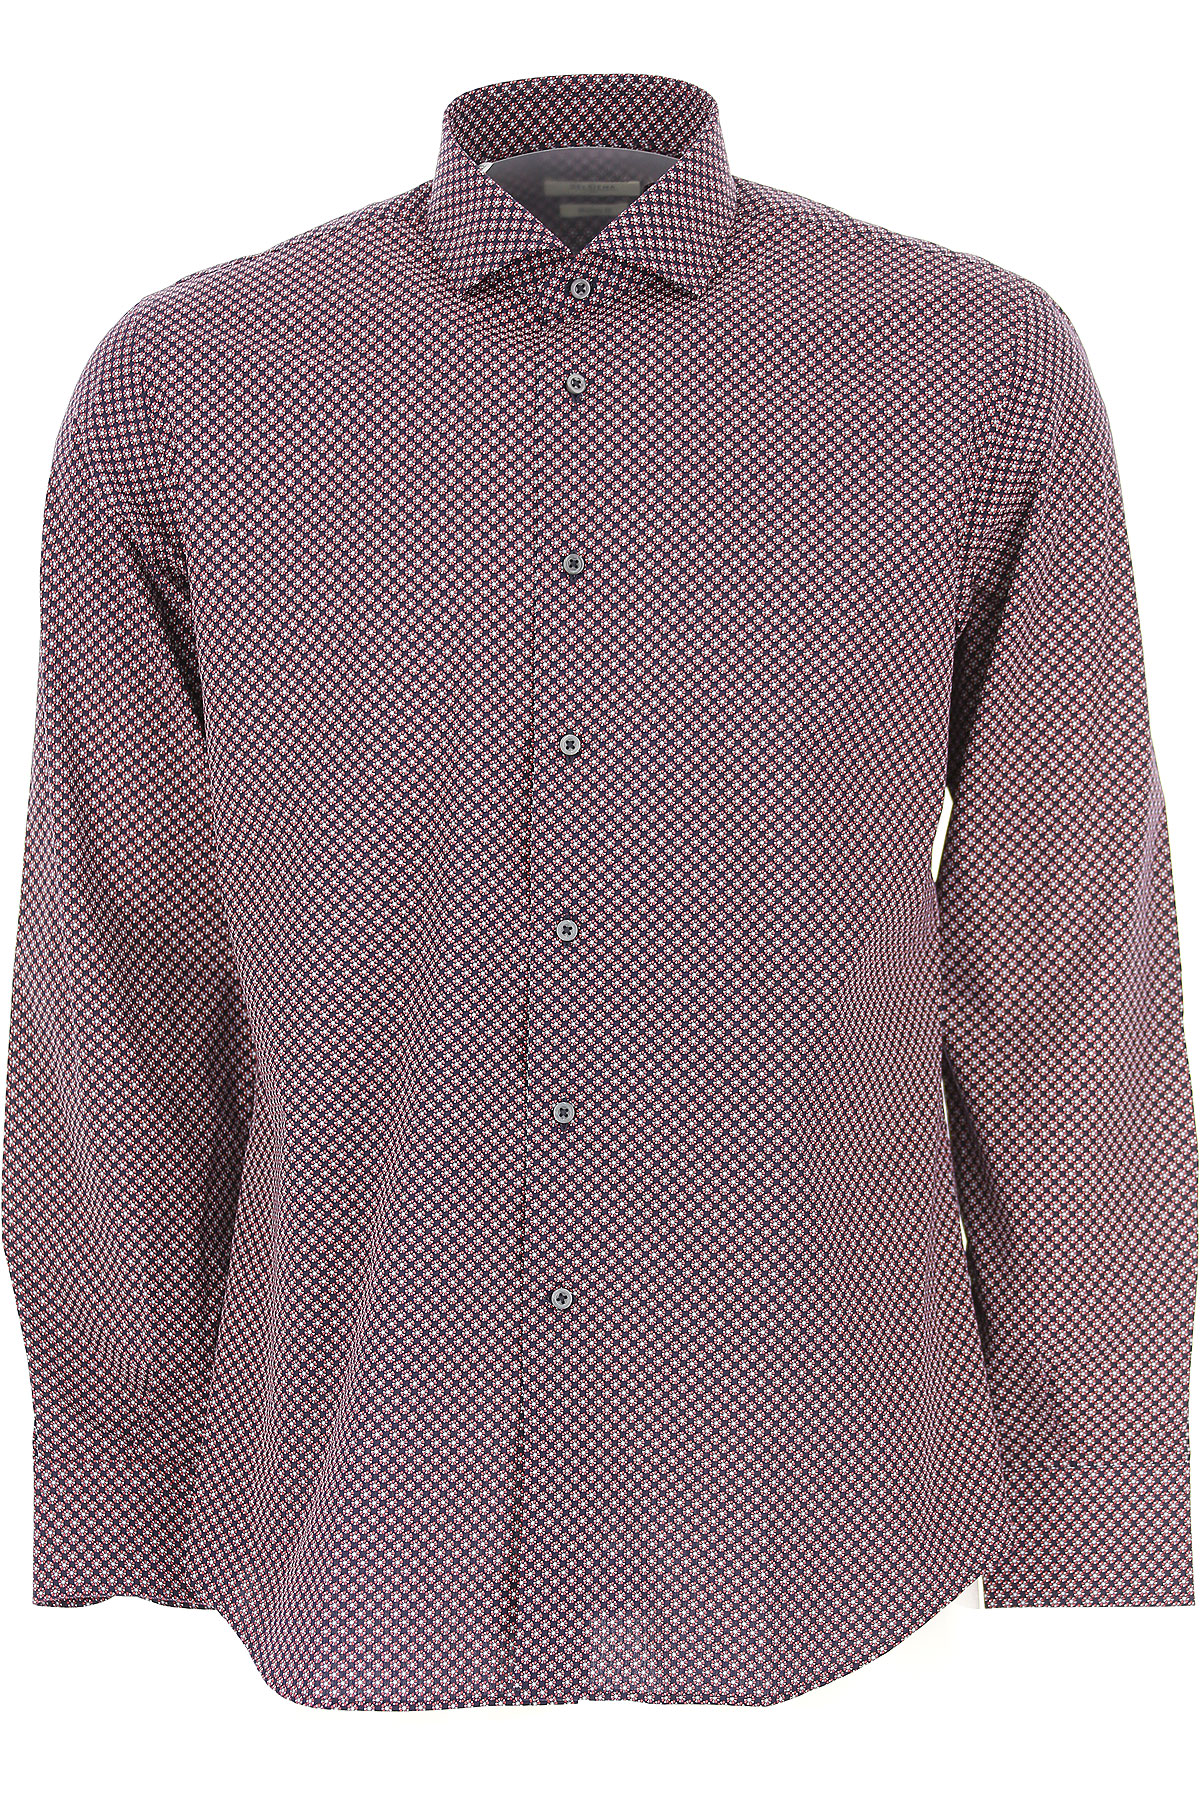 Image of Del Siena Shirt for Men, Midnight, Cotton, 2017, 15.75 16.5 17 17.5